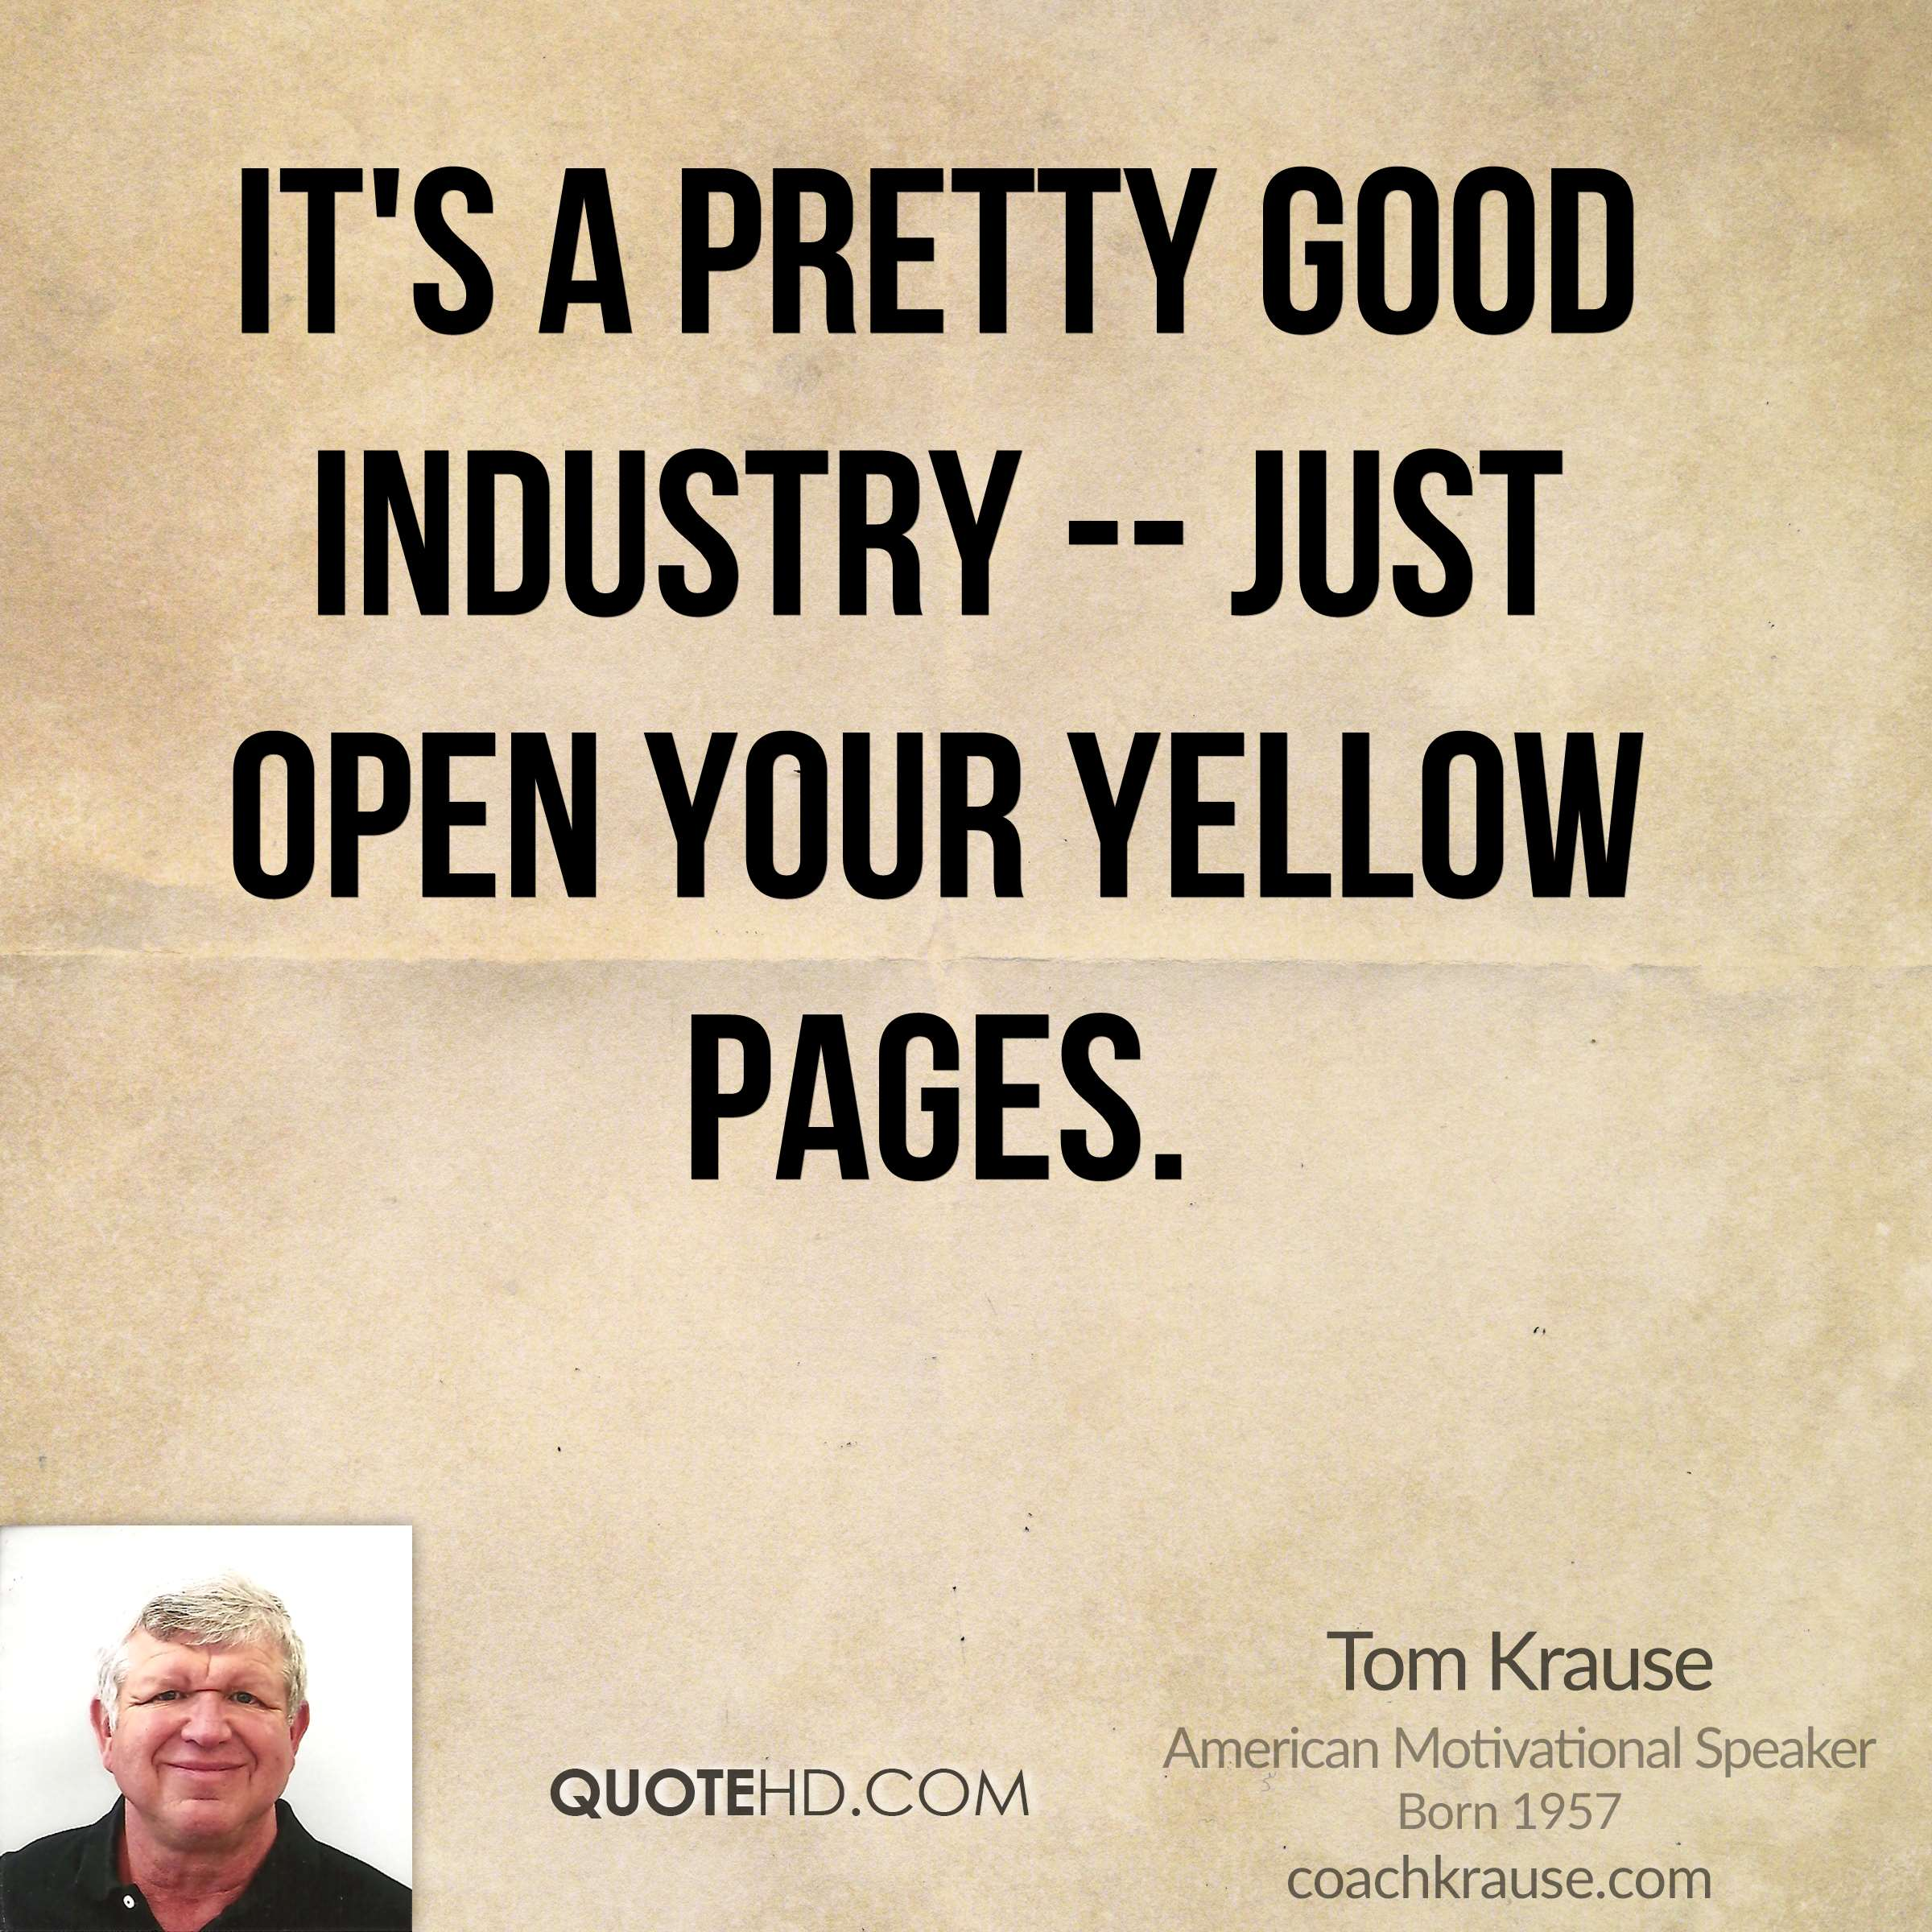 It's a pretty good industry -- just open your Yellow Pages.